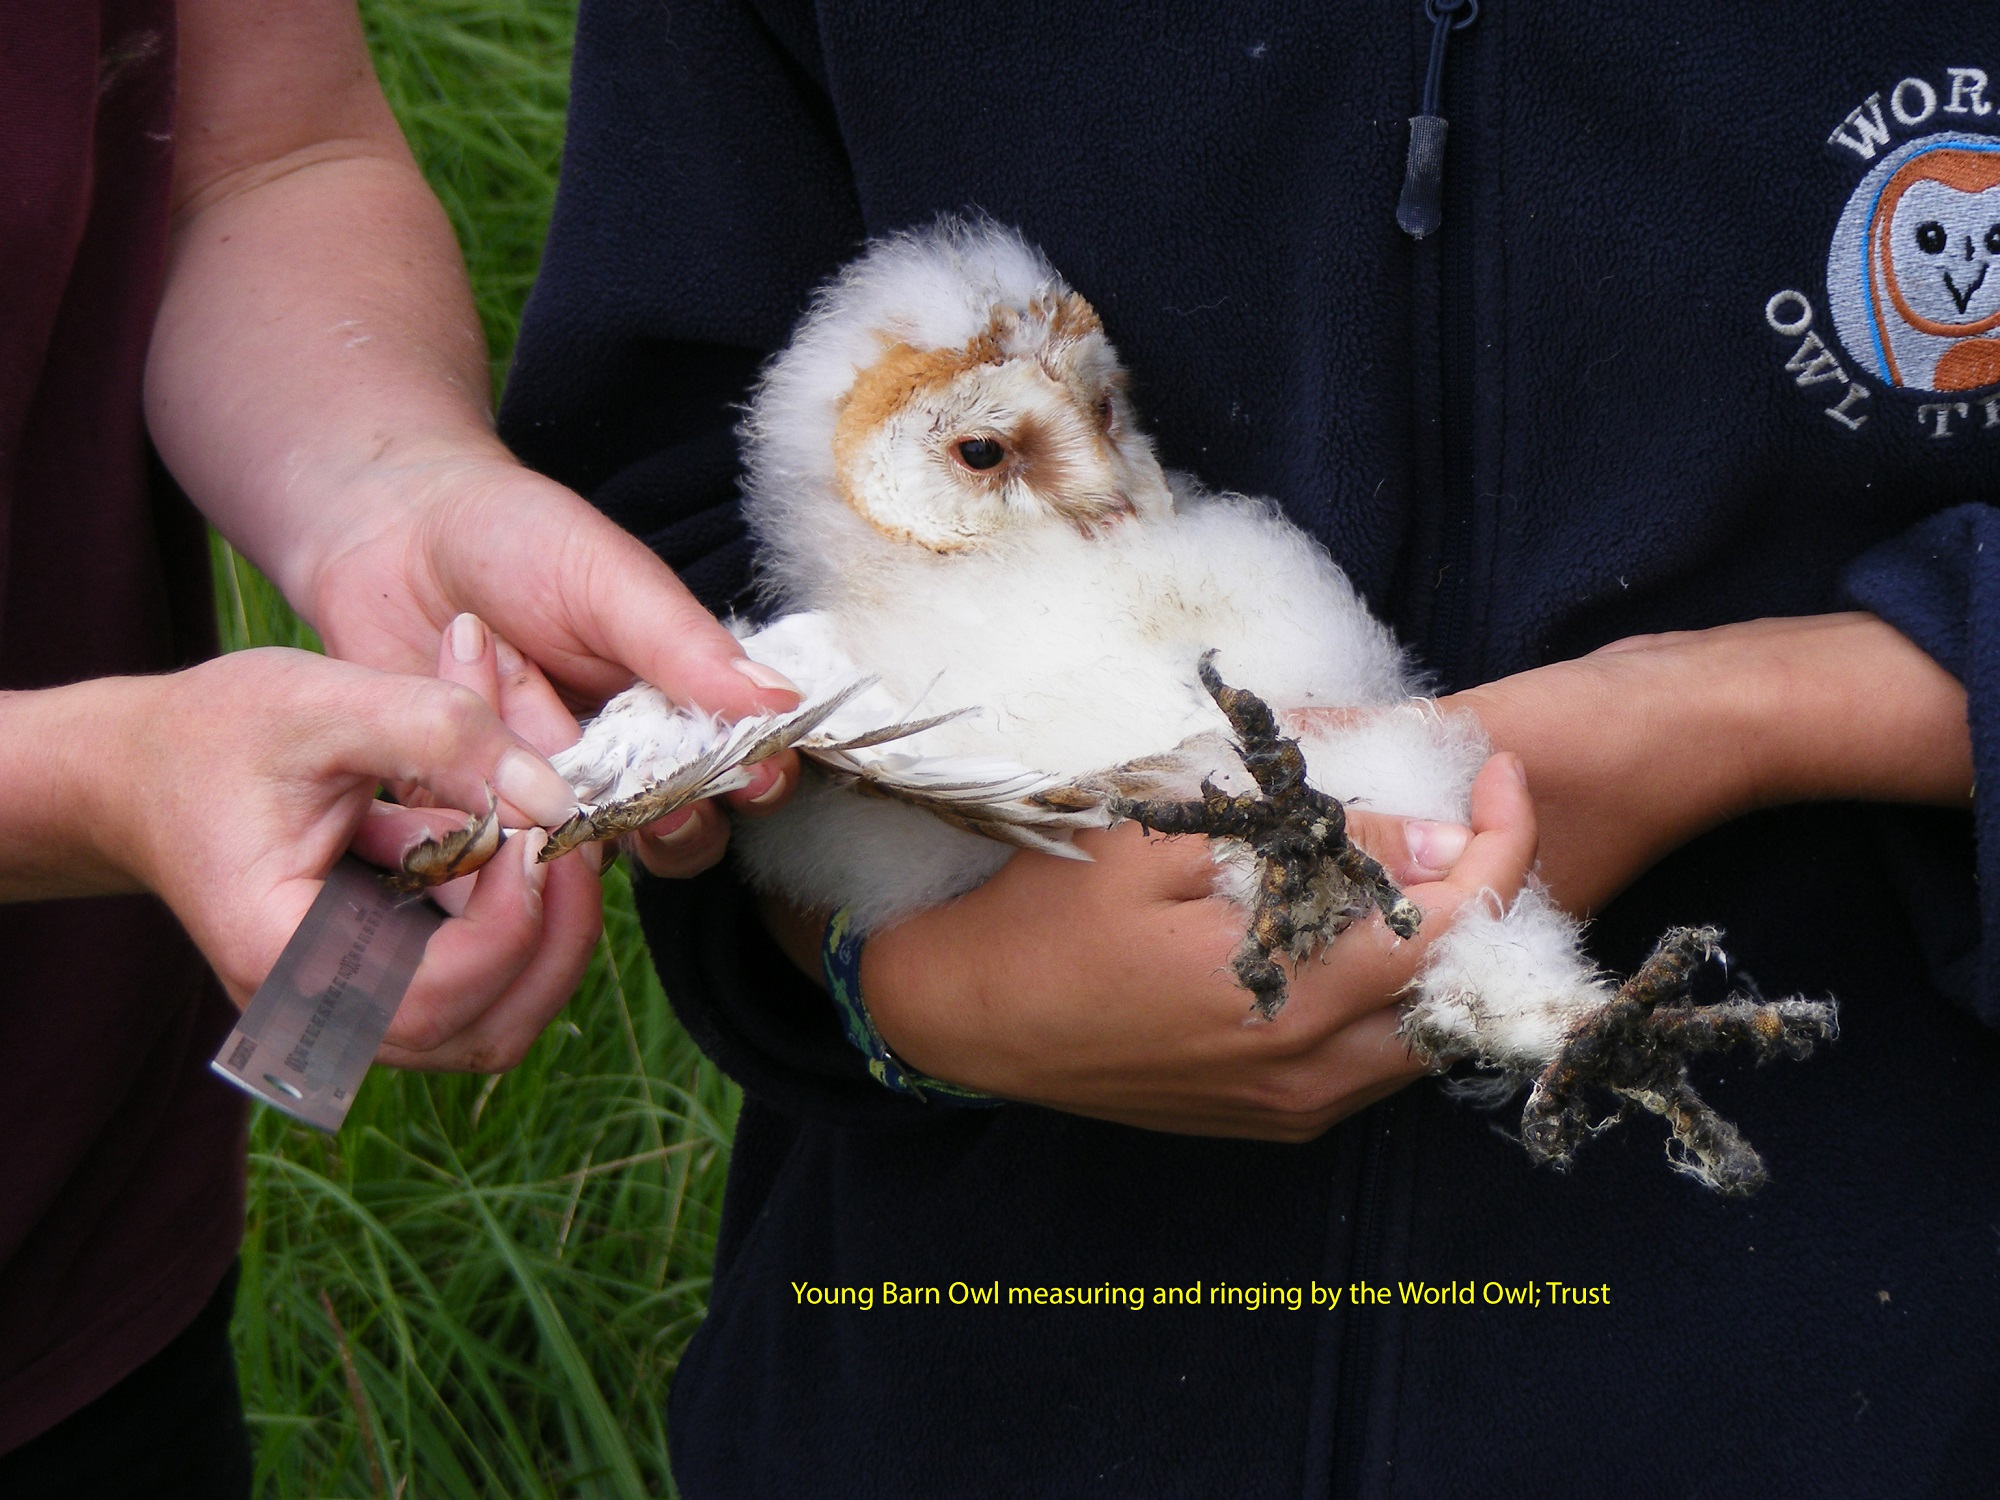 dscf5279-young-barn-owl-measuring-and-ringing-by-the-world-owl-trust-78fd4b5dc2bc9e4b01de268cea169dbb459f4e0a